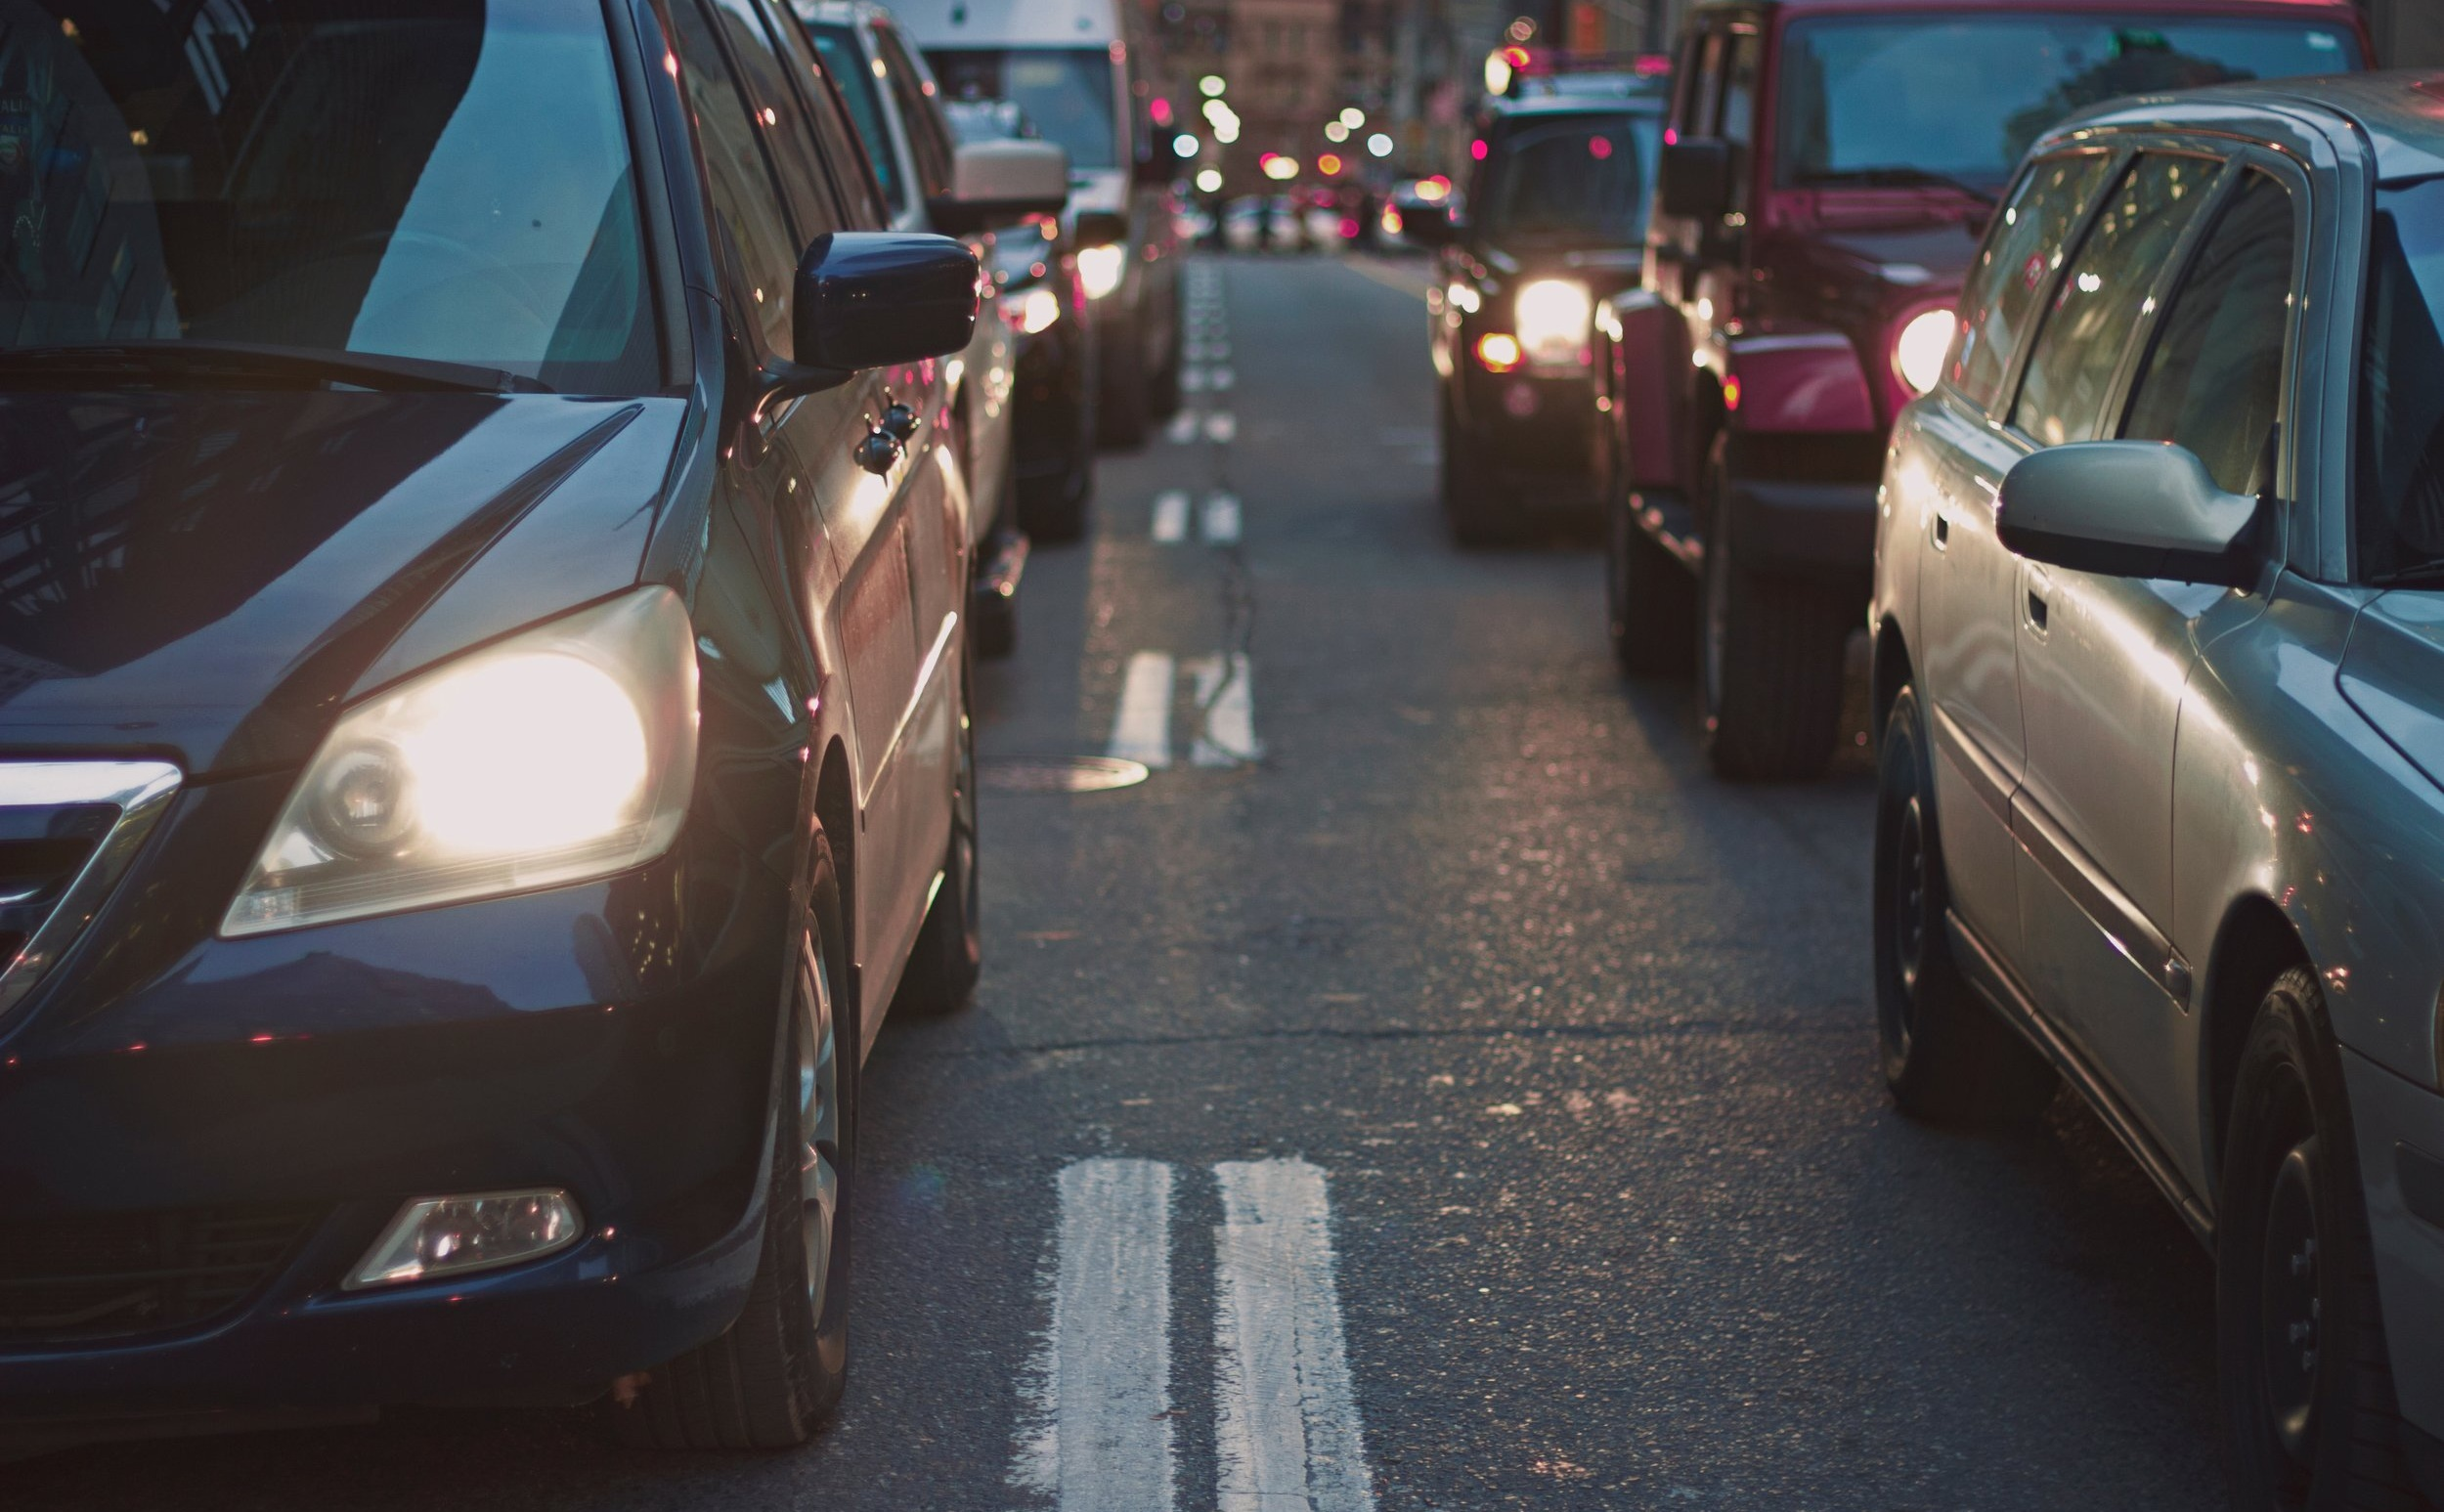 In Canada, transportation accounts for approximately 23% of total greenhouse gas emissions. -